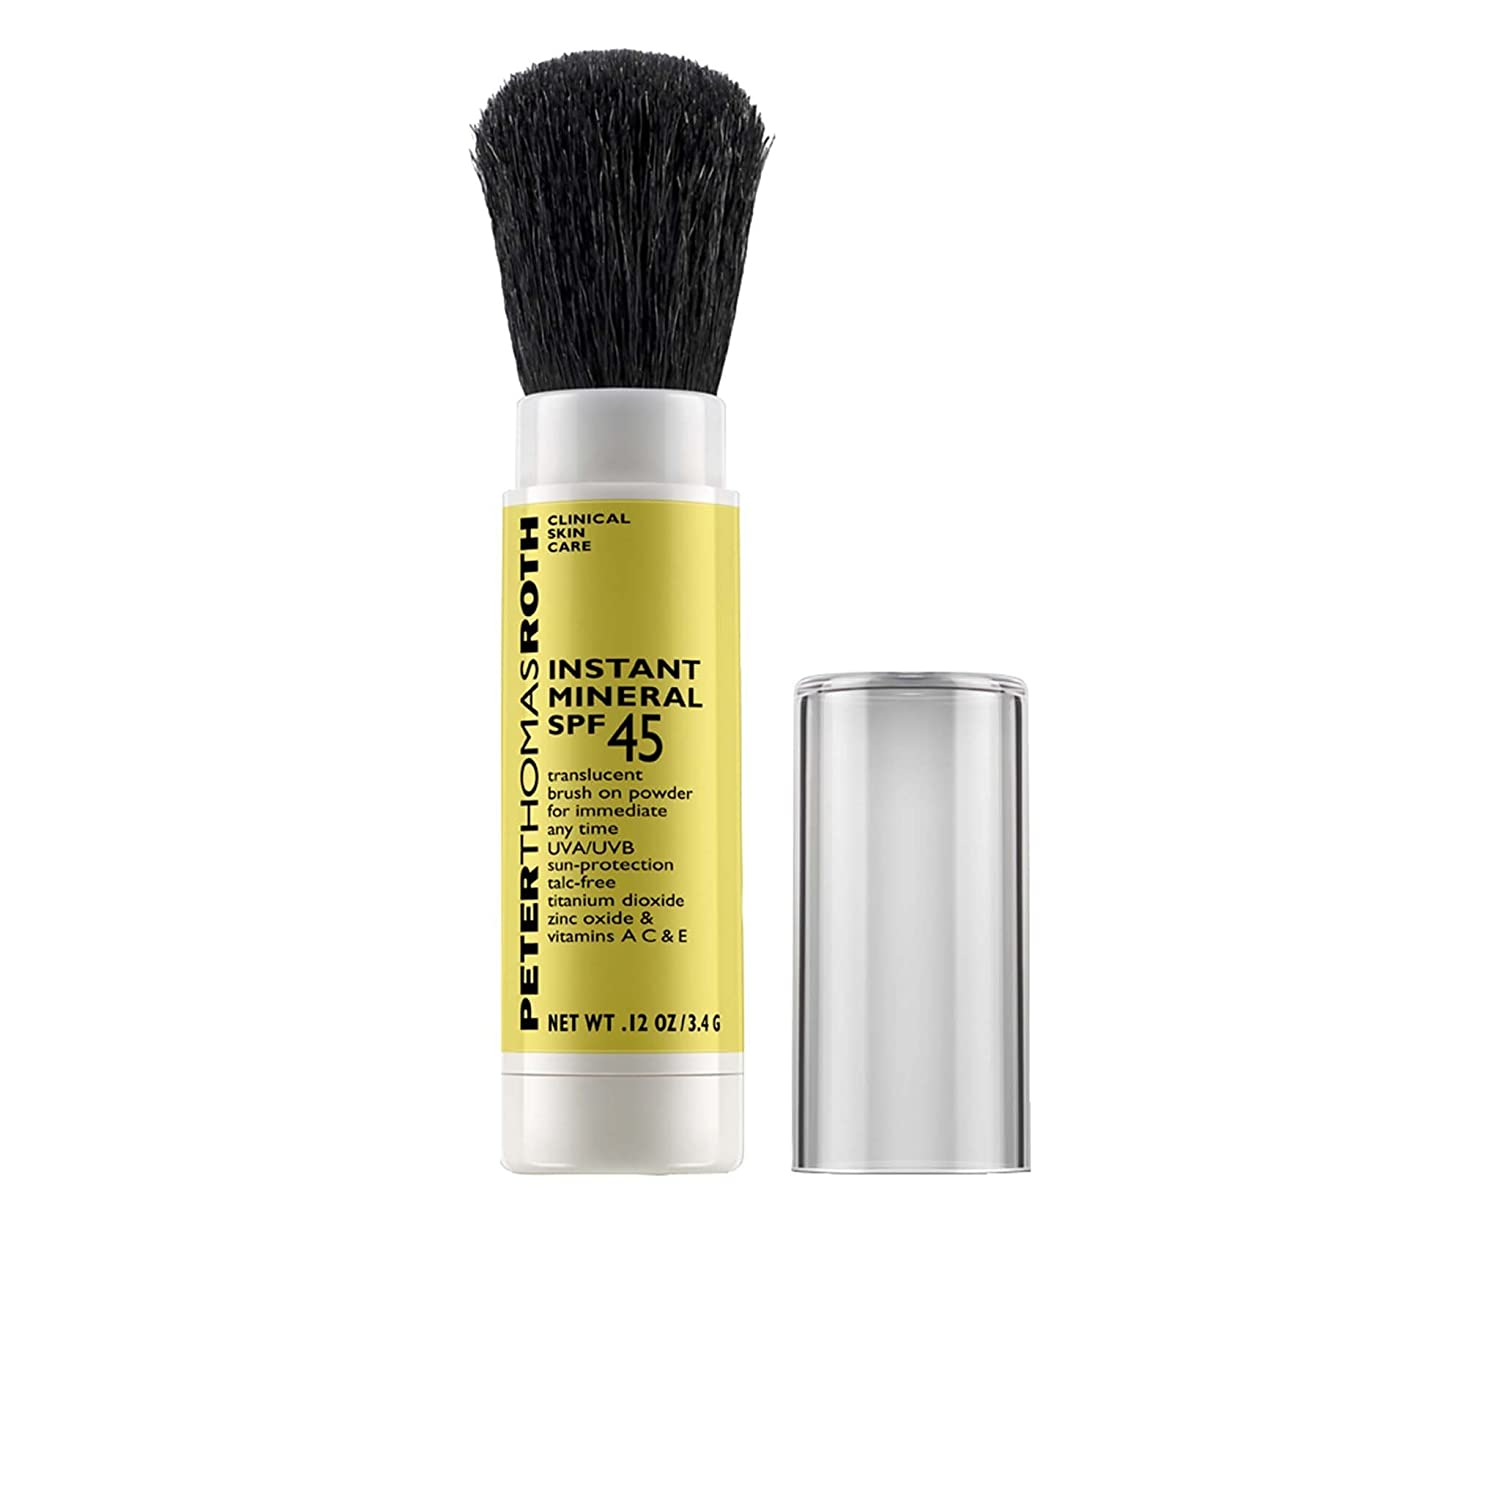 Peter Thomas Roth Instant Mineral SPF 45, 0.12 Ounce